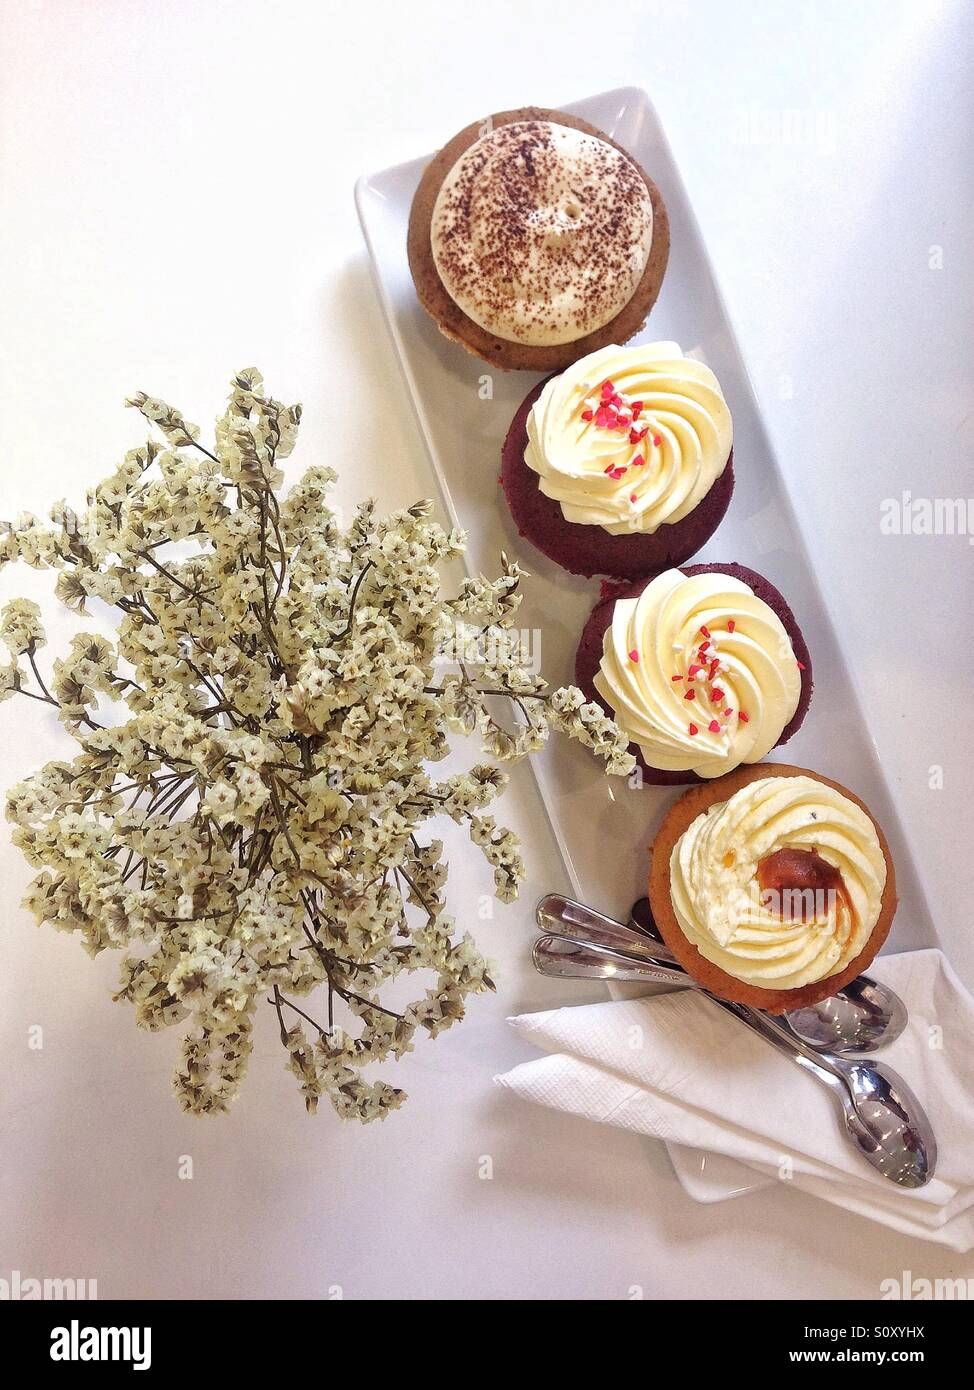 Cupcakes for tea time - Stock Image